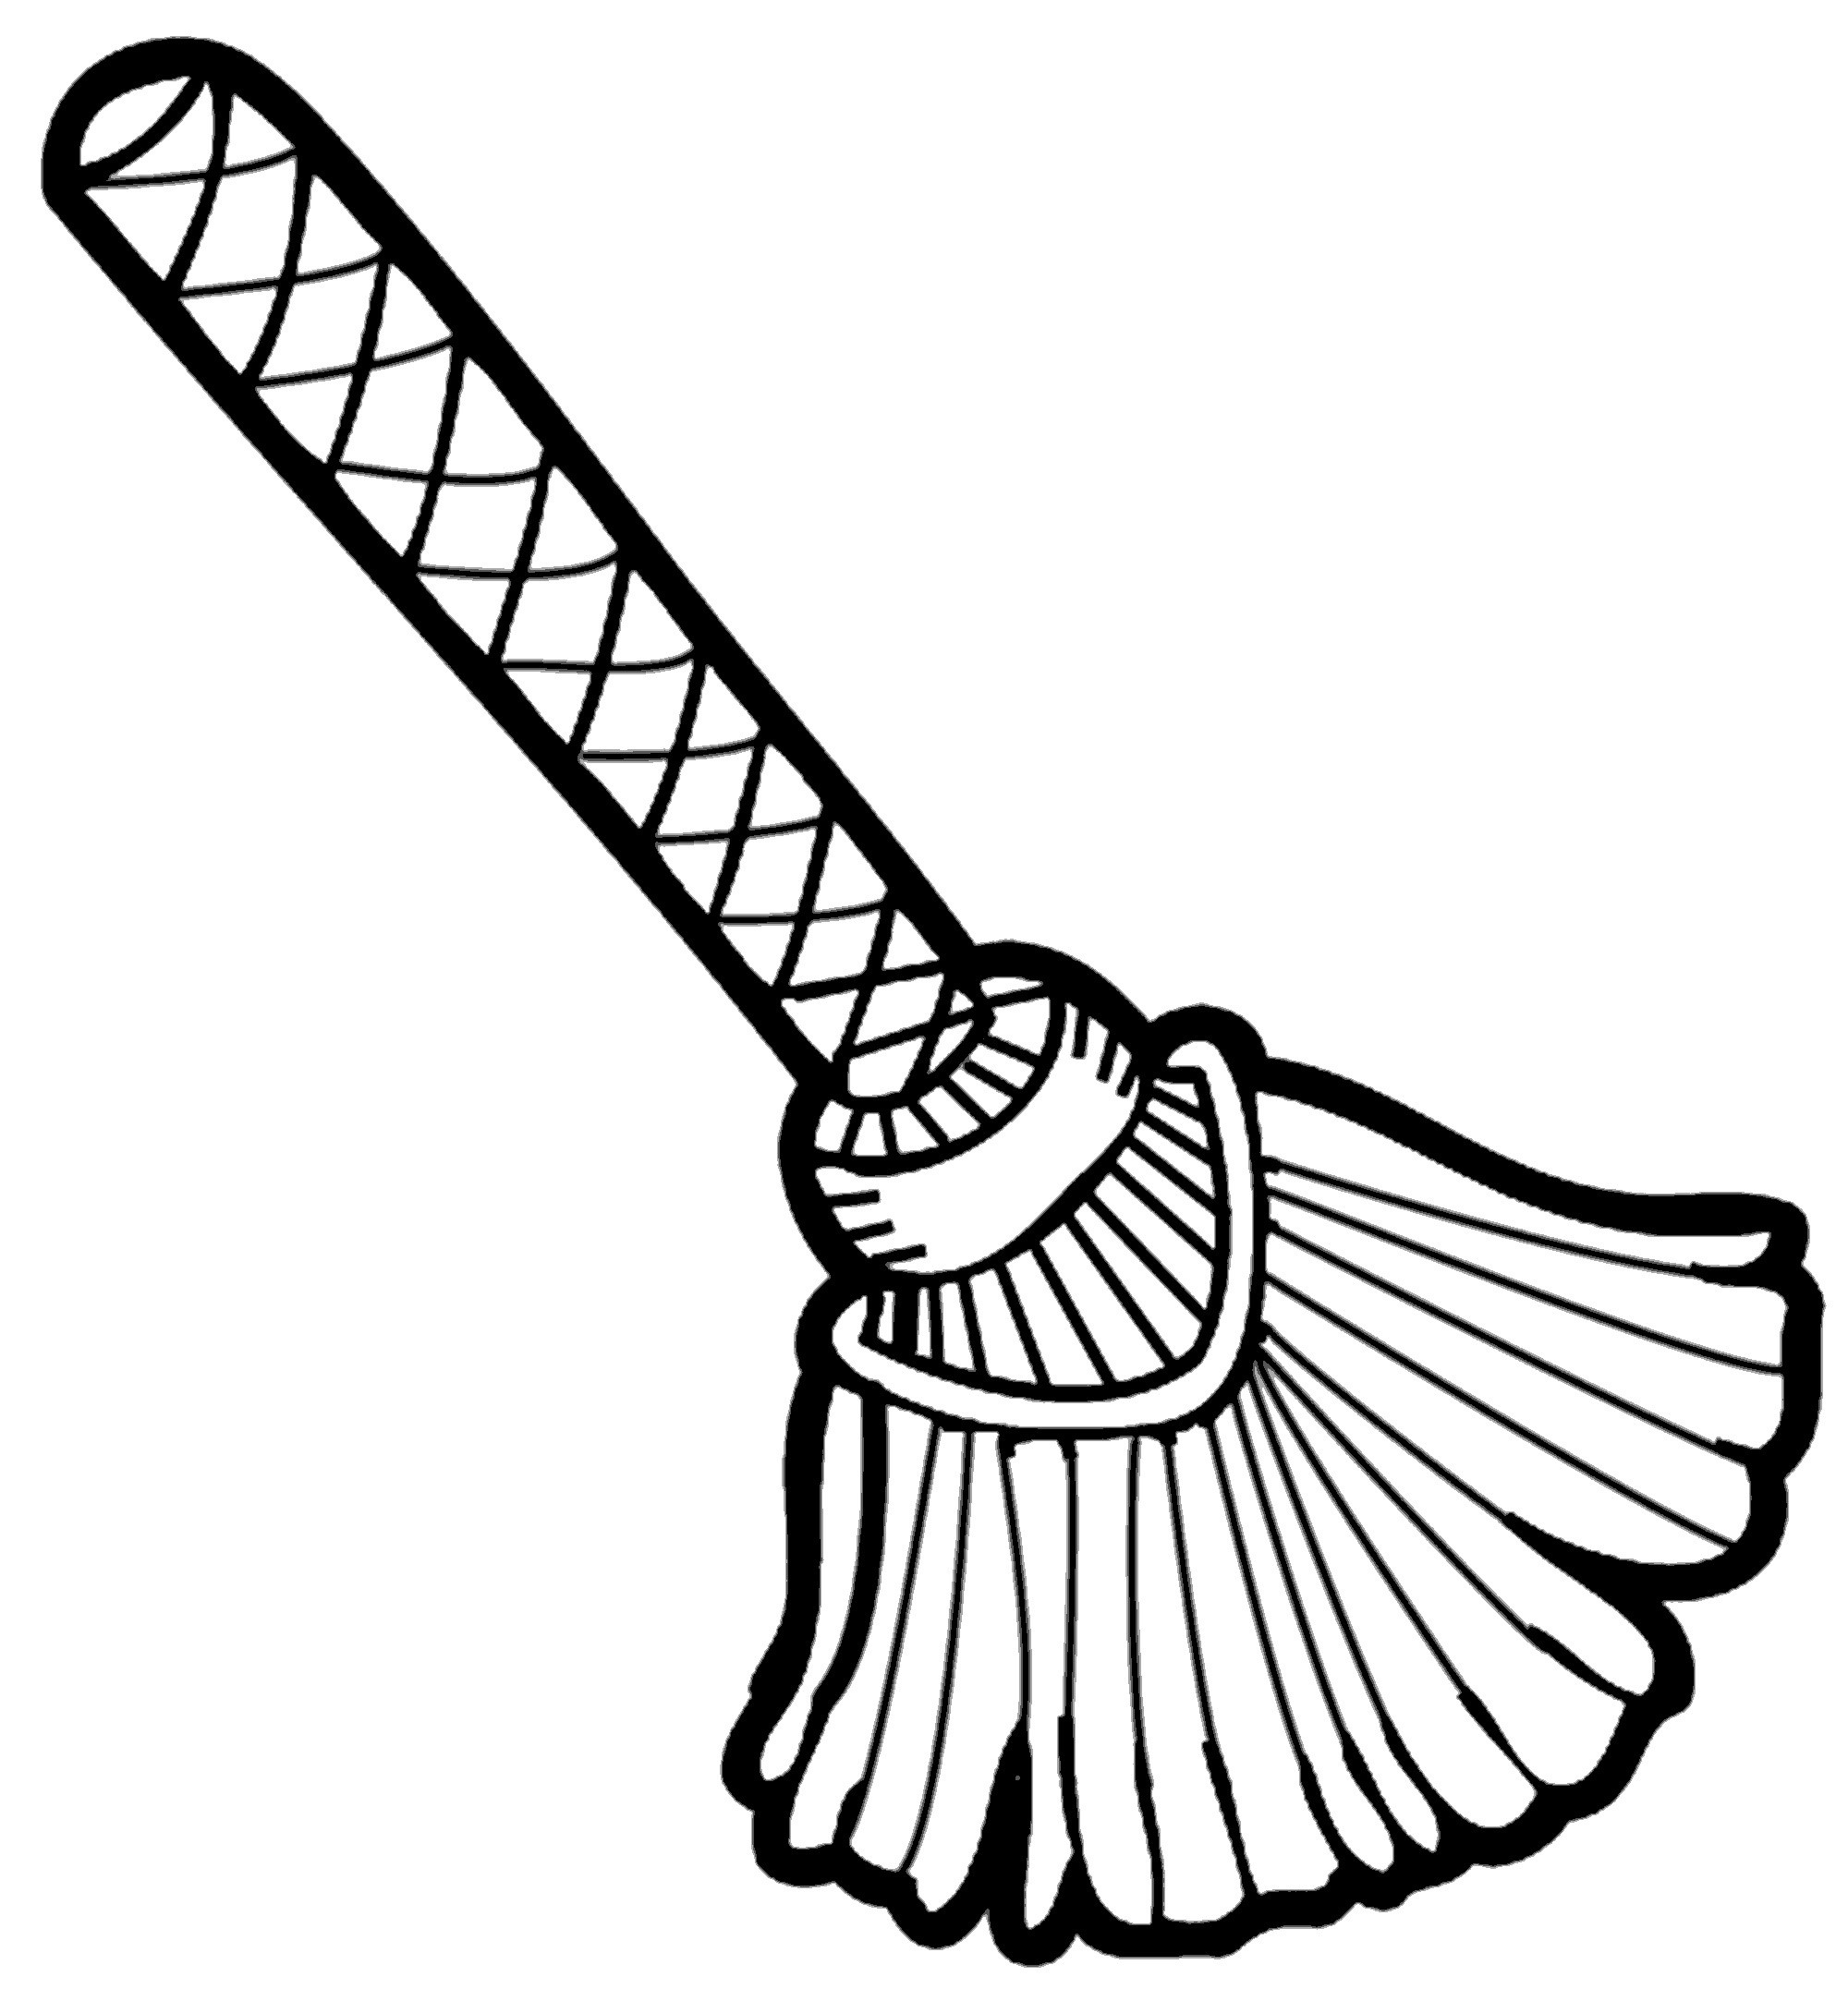 Broom and dustpan clipart black and white svg stock Broom and dustpan clipart black and white 6 » Clipart Portal svg stock